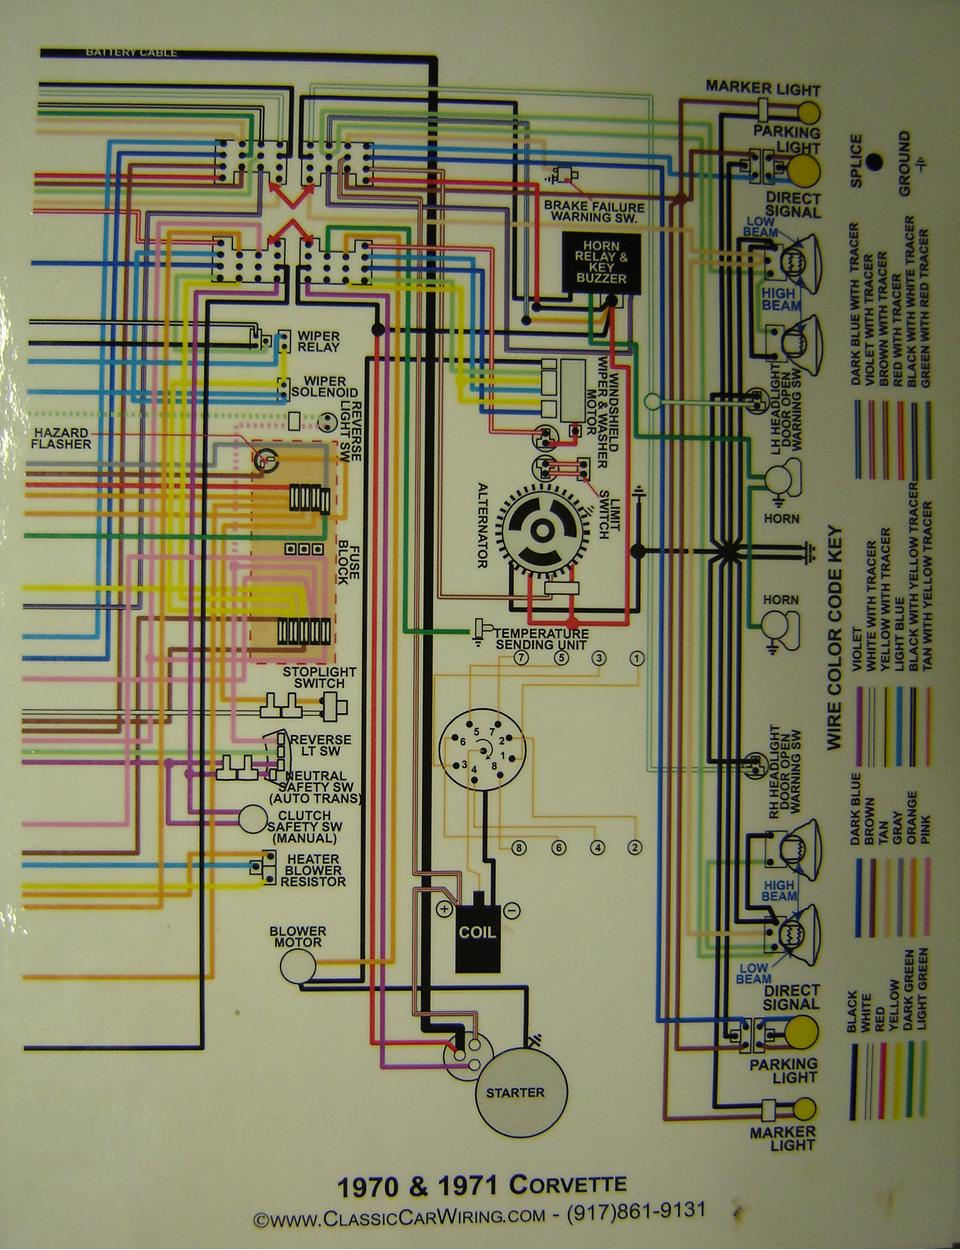 1970 el camino engine wiring diagram 1970 image chevy diagrams on 1970 el camino engine wiring diagram